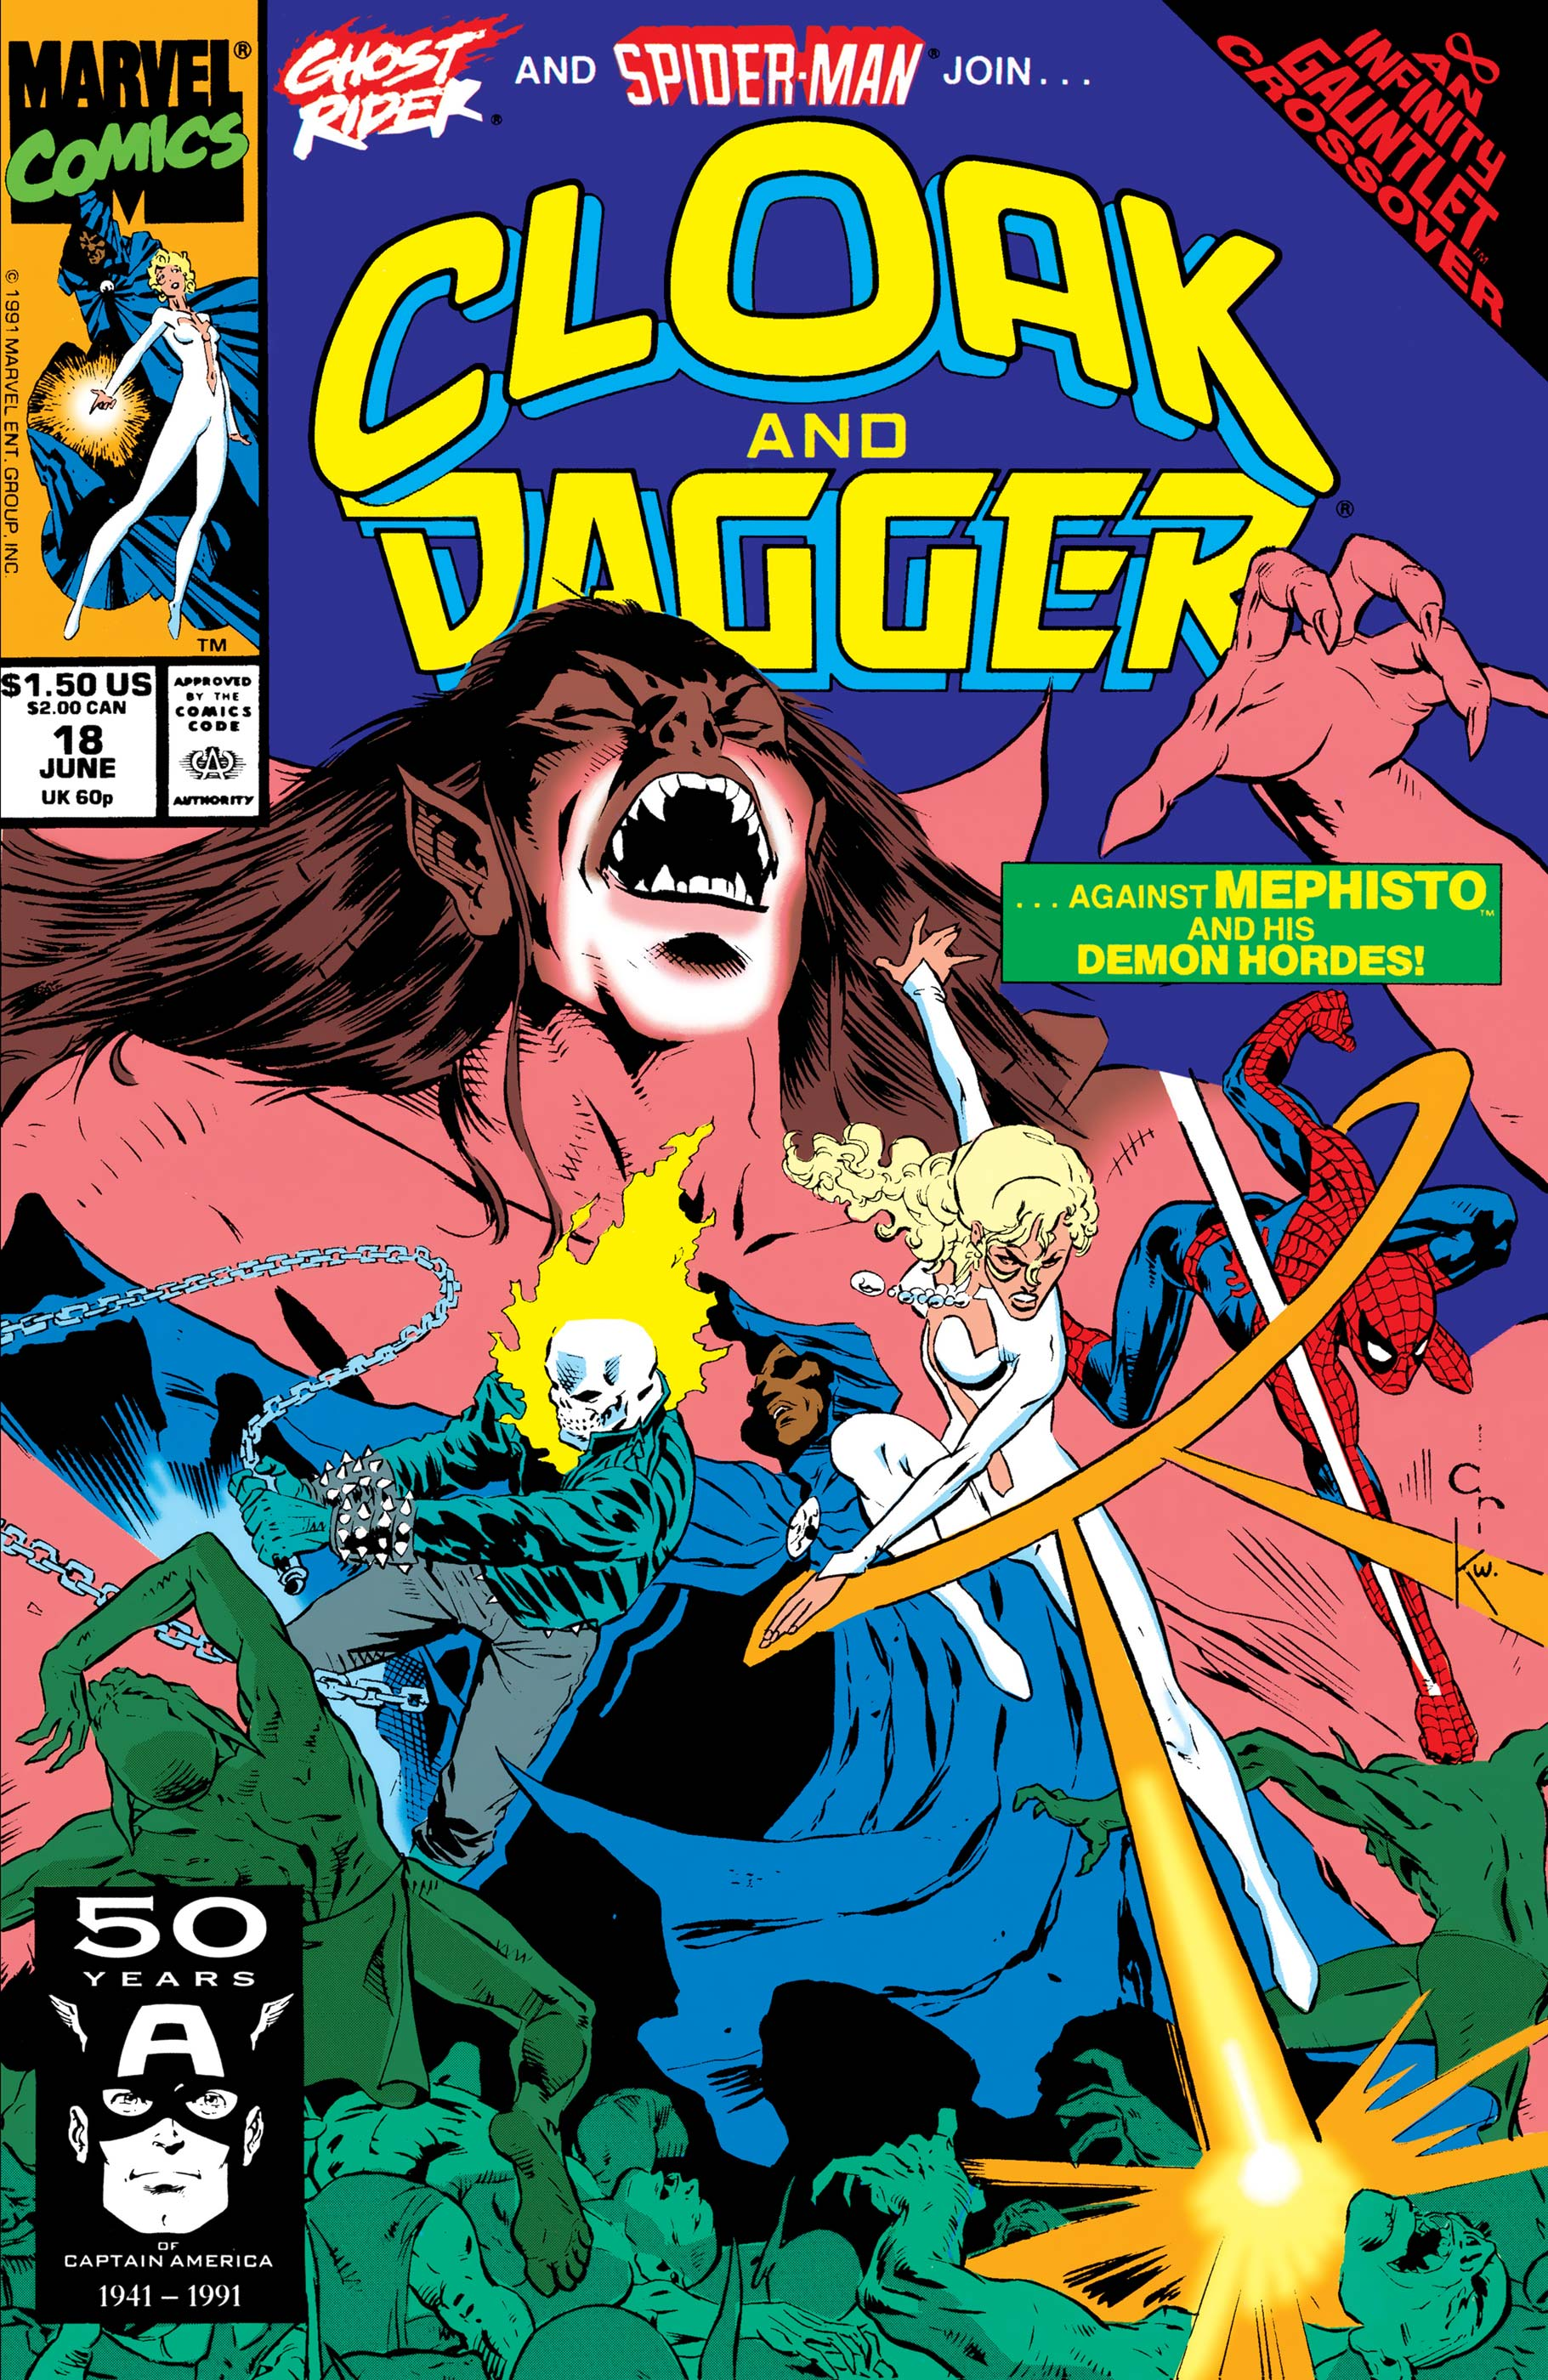 The Mutant Misadventures of Cloak and Dagger (1988) #18